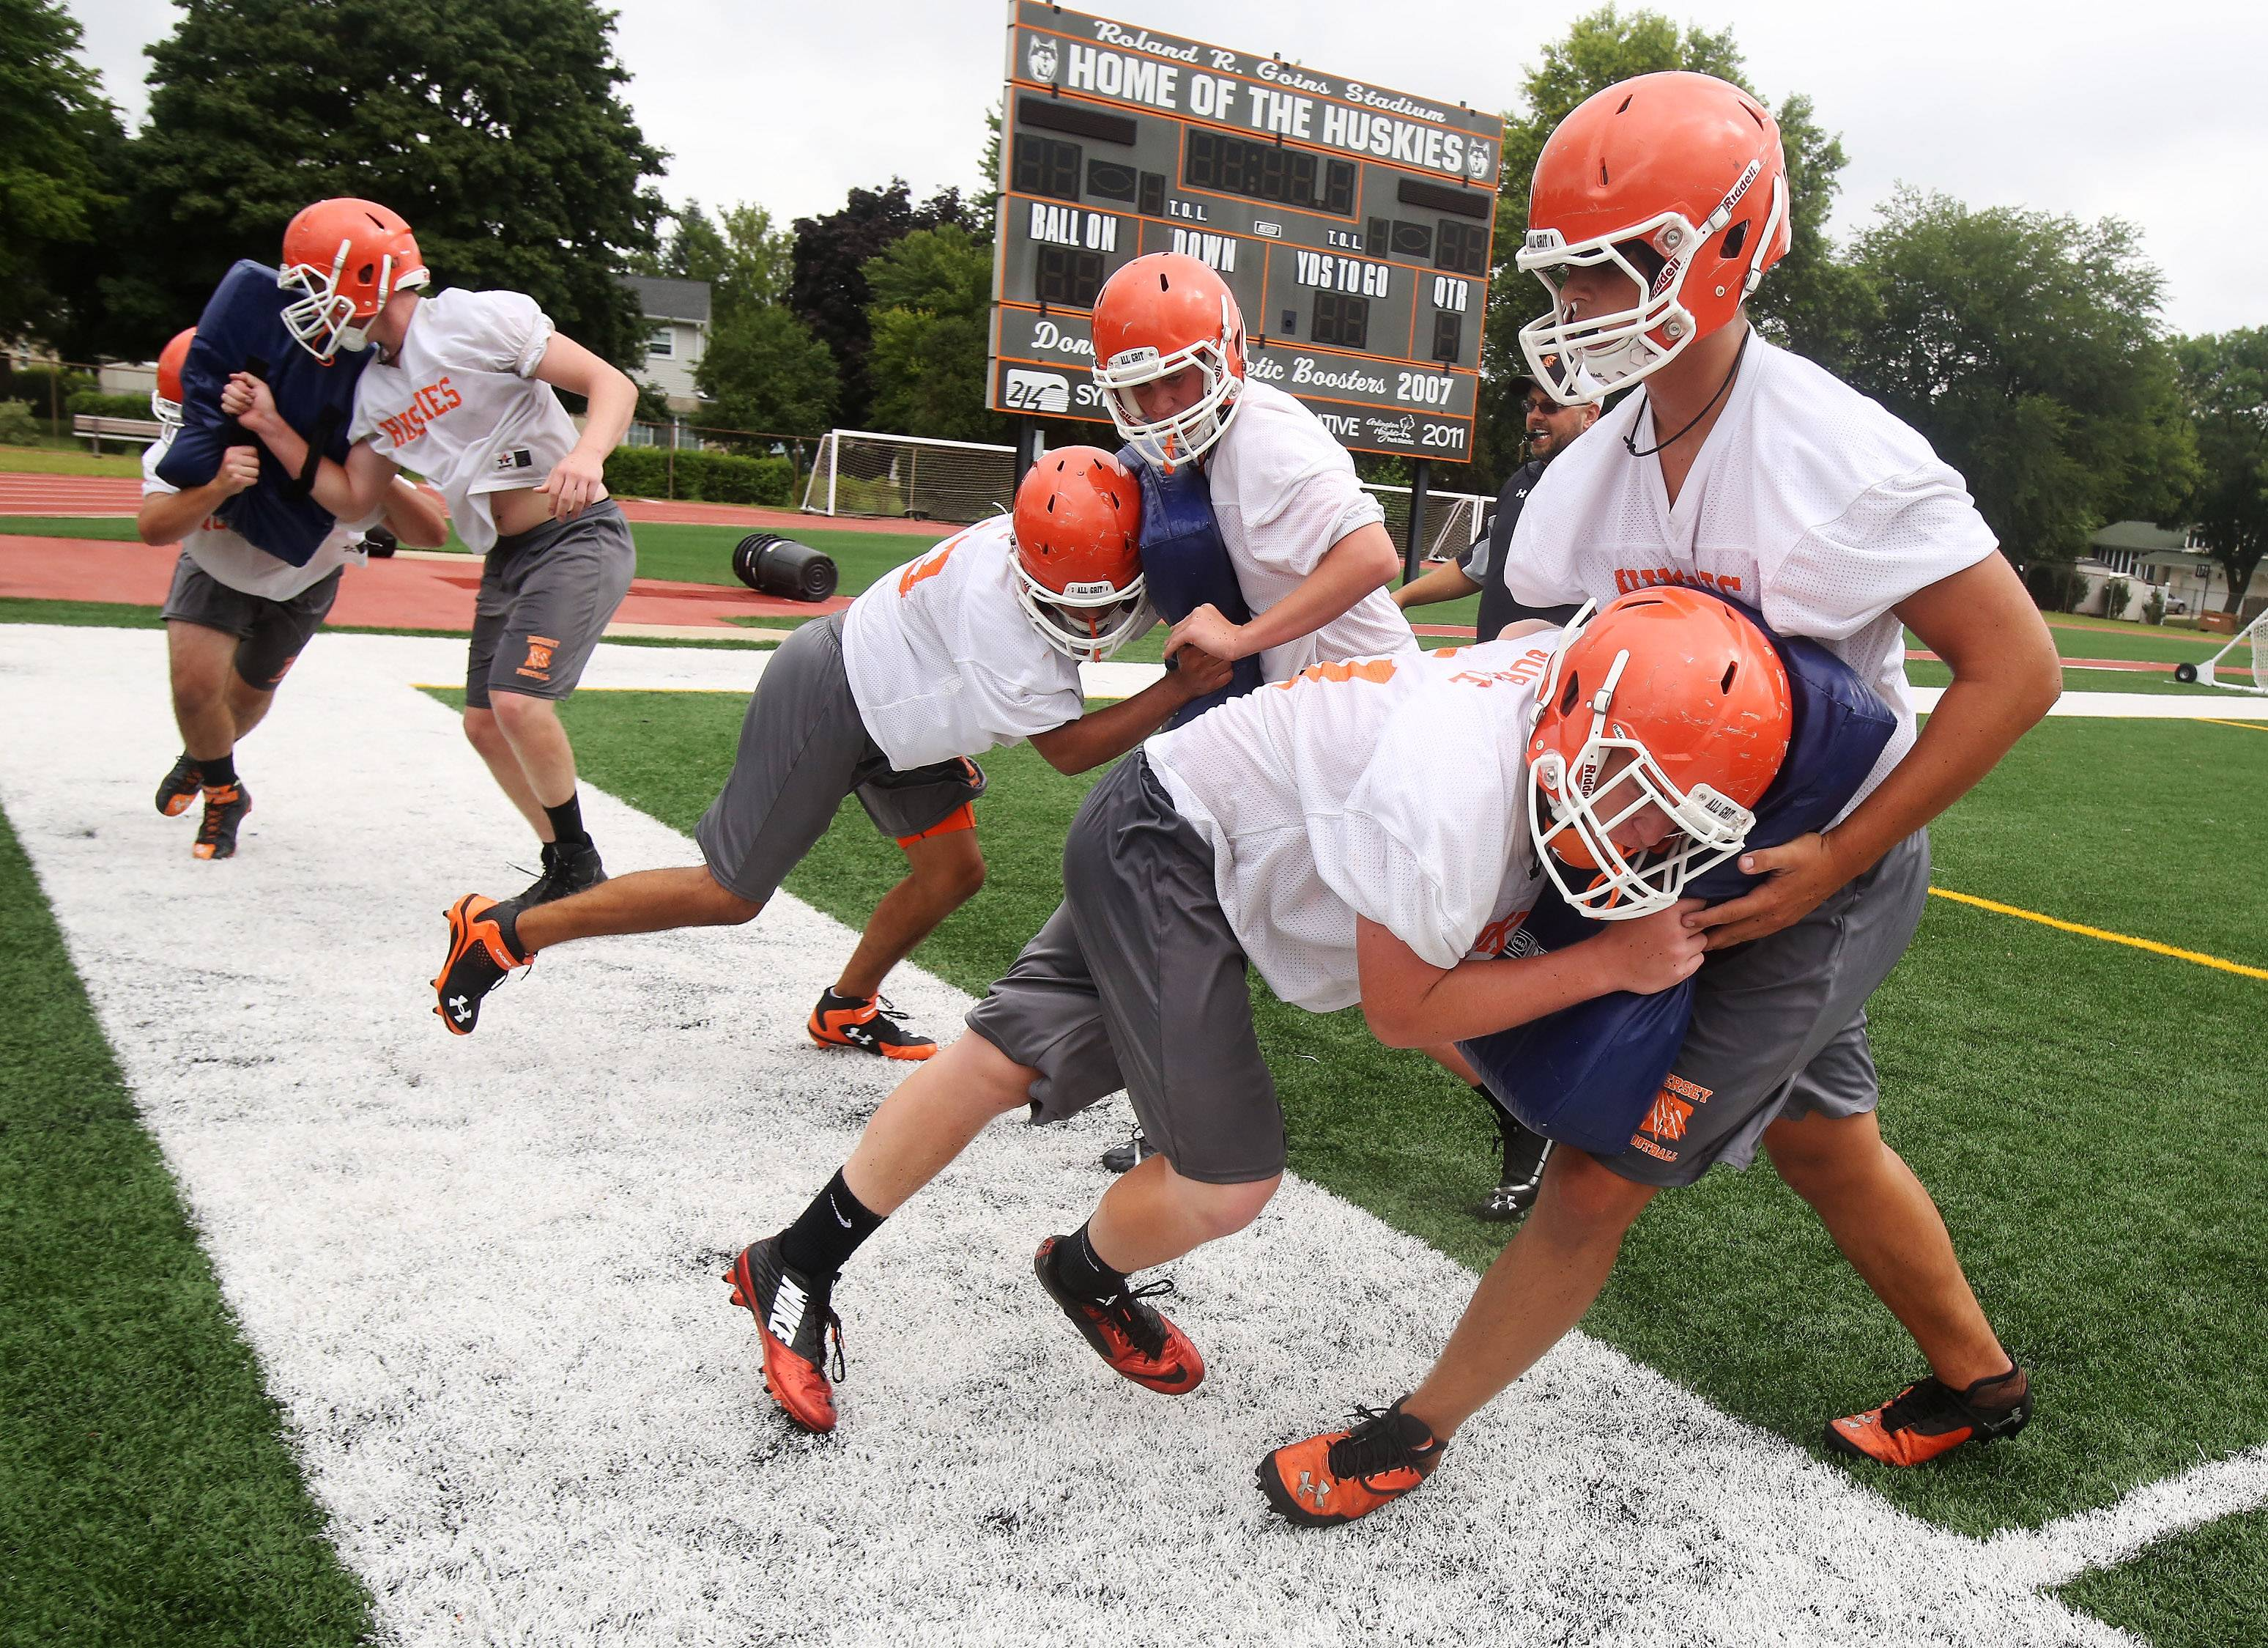 Lineman go through blocking drills during the first day of football practice at Hersey High School on Monday.